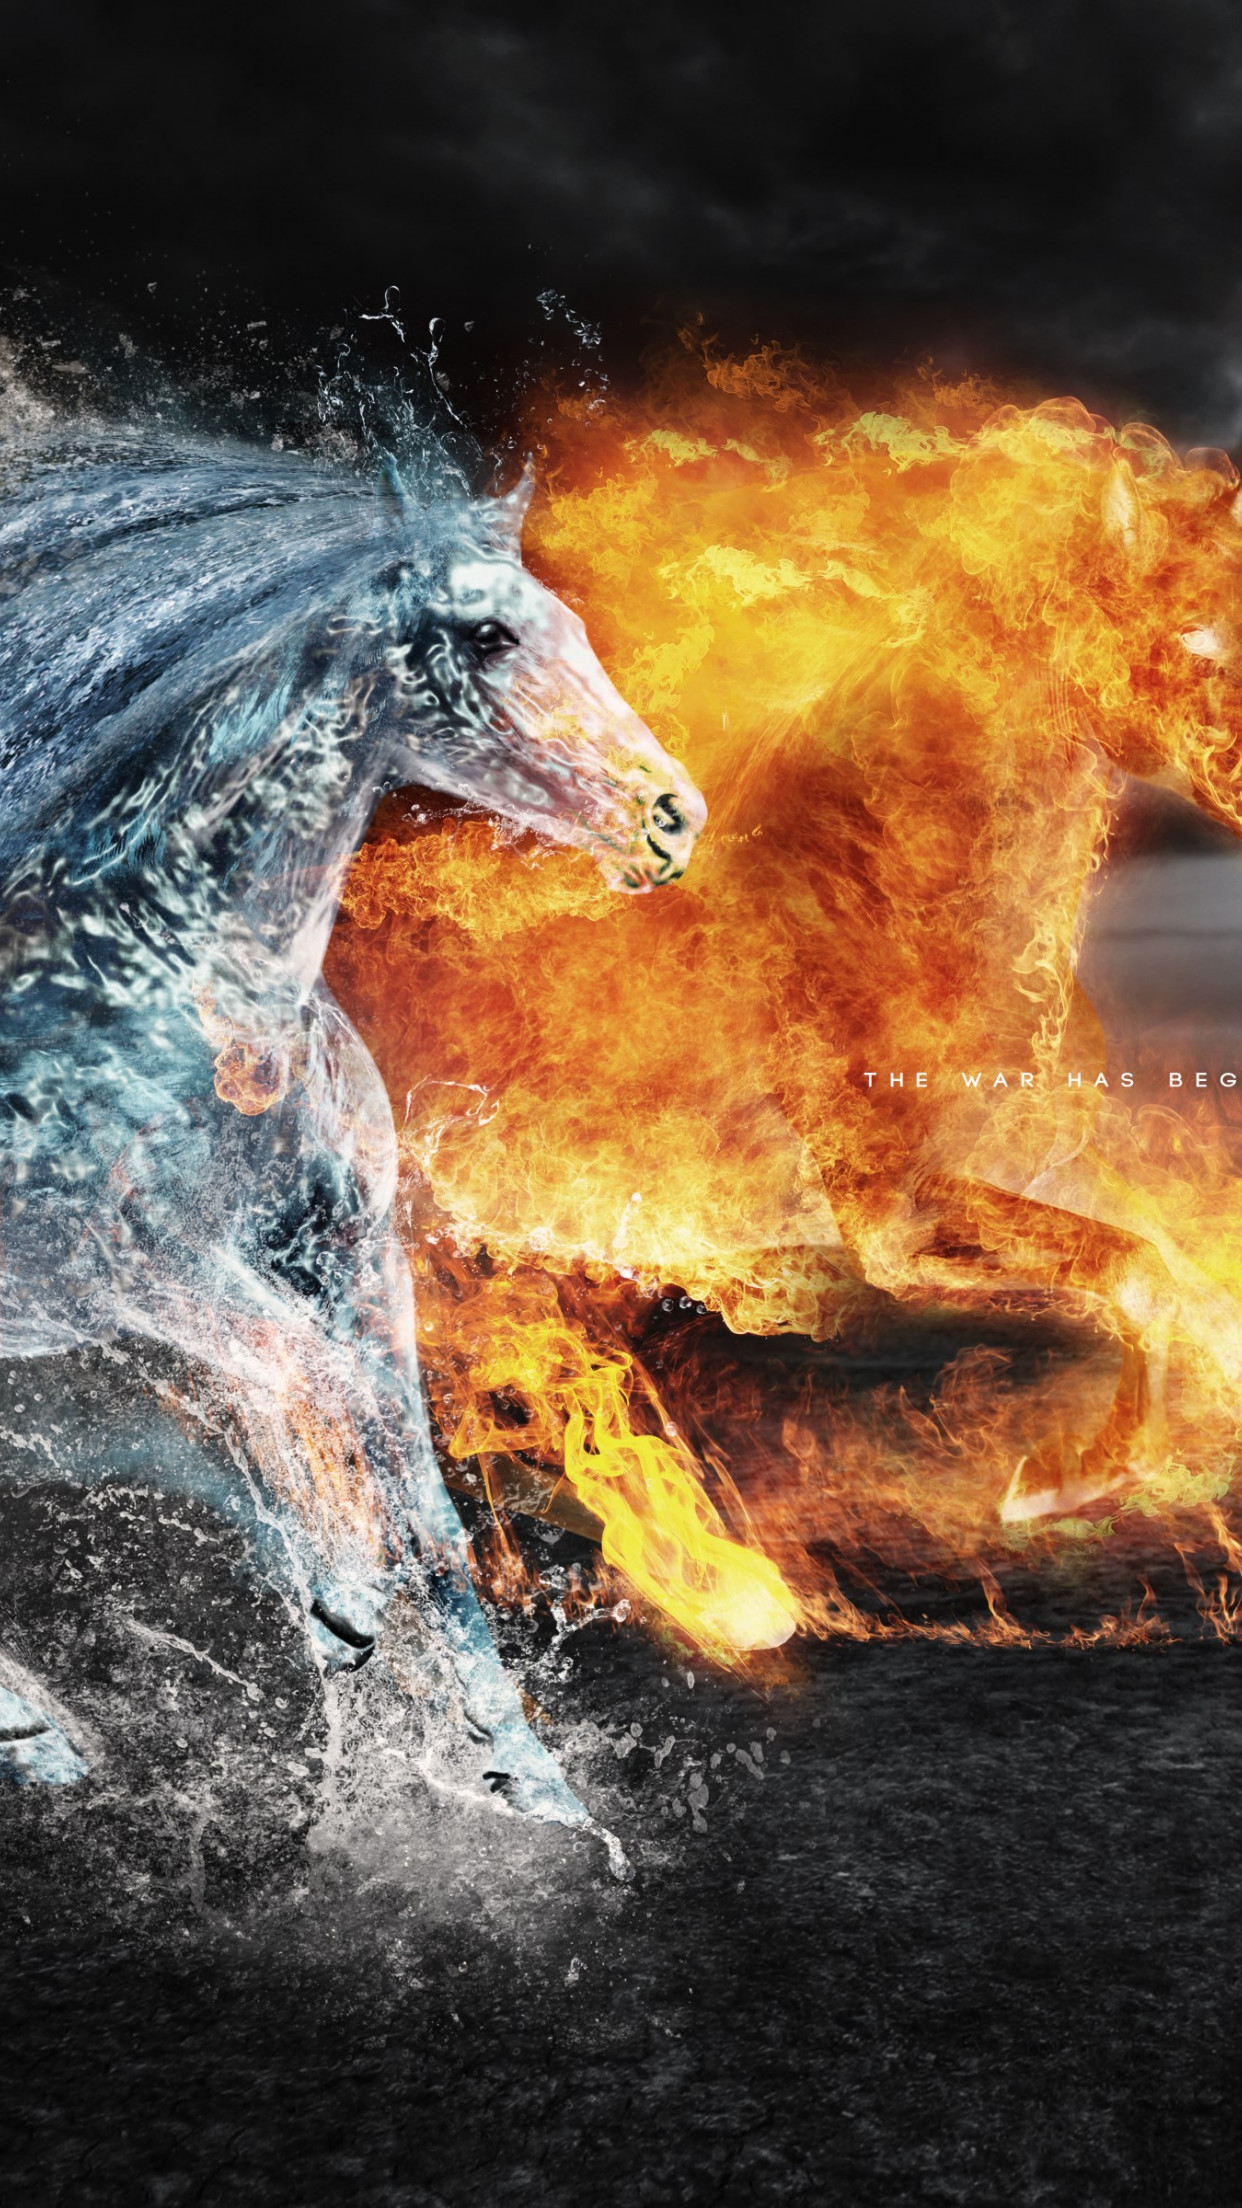 Horses of: Earth, Fire and Water wallpaper 1242x2208